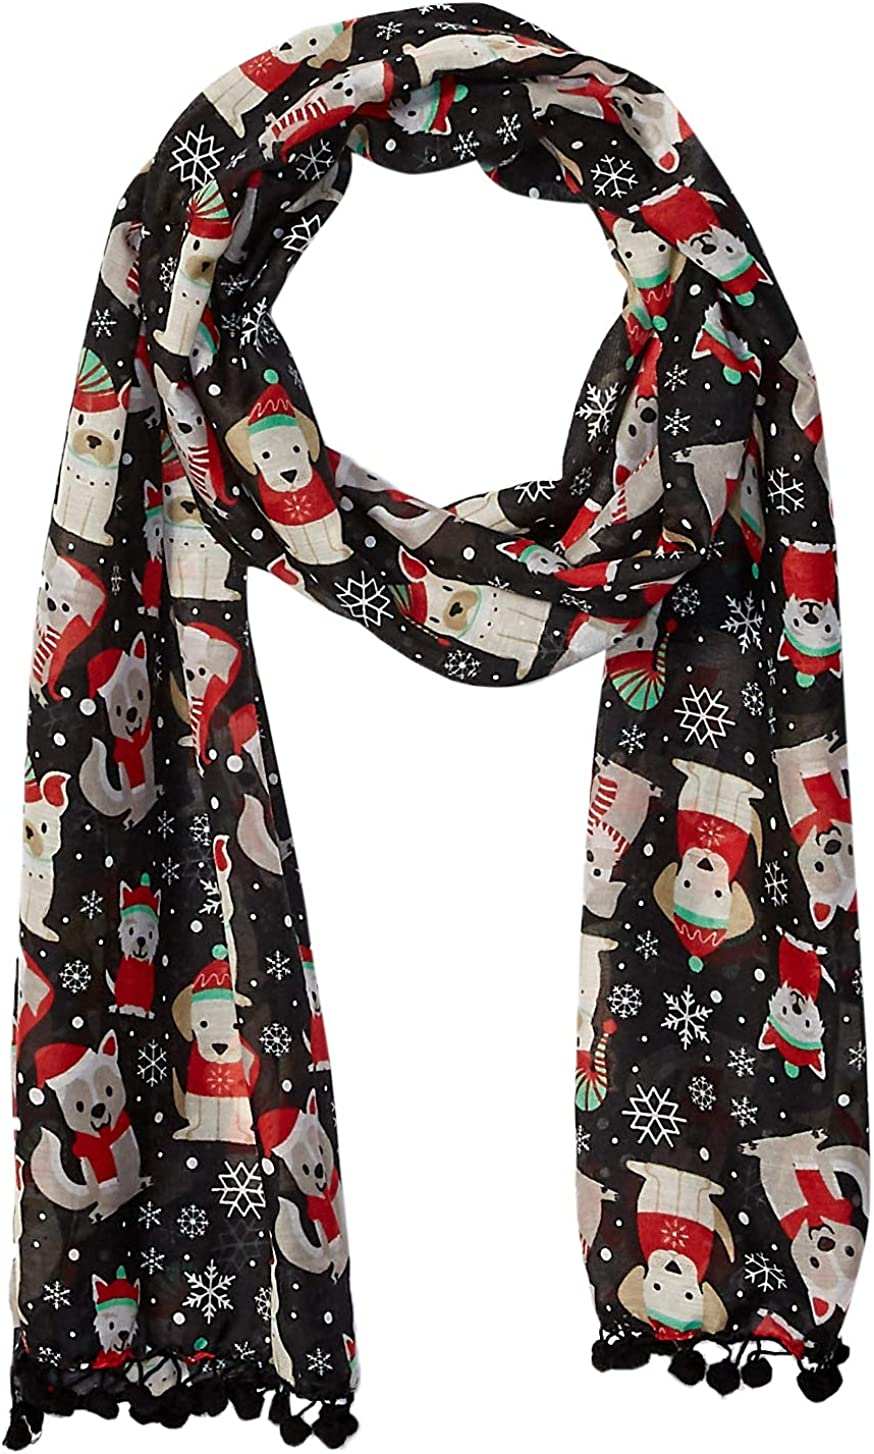 Steve Madden Women's Holiday Scarf, Black, One Size